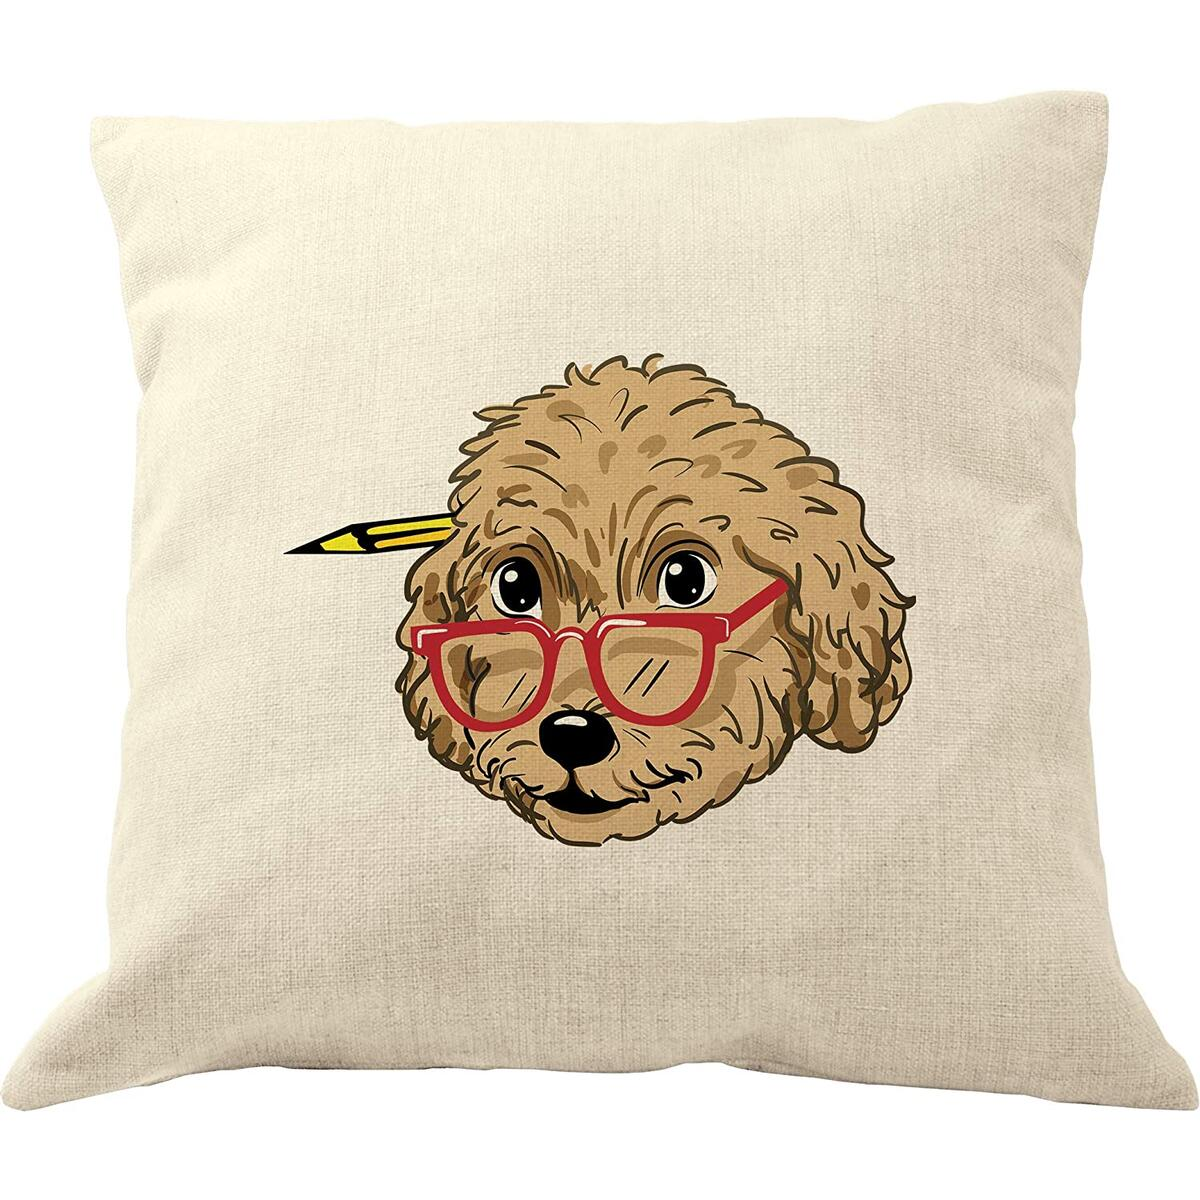 DrupsCo Goldendoodle Pillow Cover 18x18, Cotton Linen Decorative Dog Throw Pillow Case